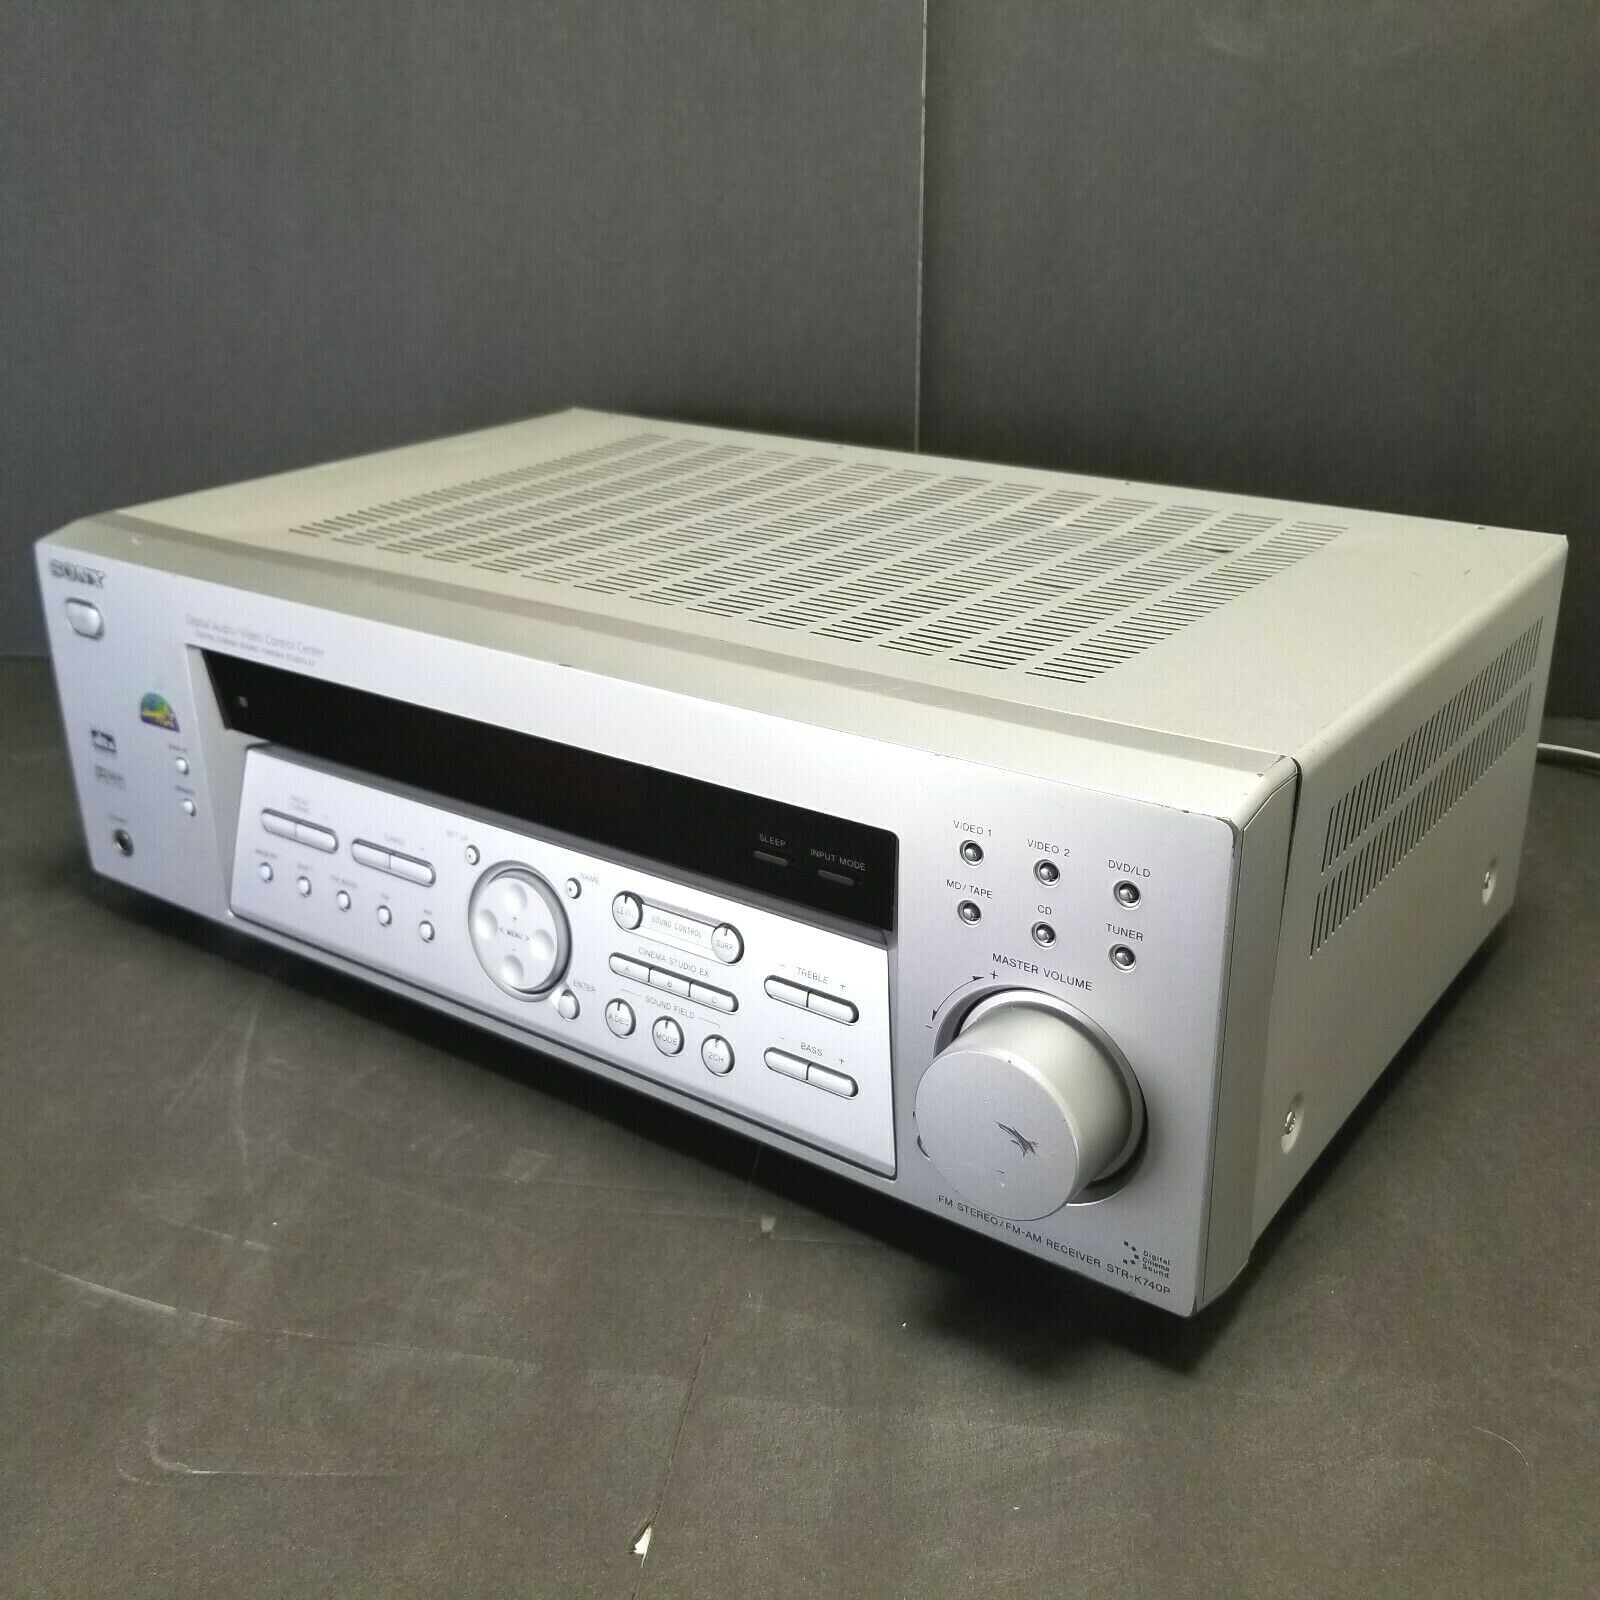 Sony STR-K740P AM/FM Stereo Receiver Digital Audio Video Control Center Silver. Buy it now for 59.99